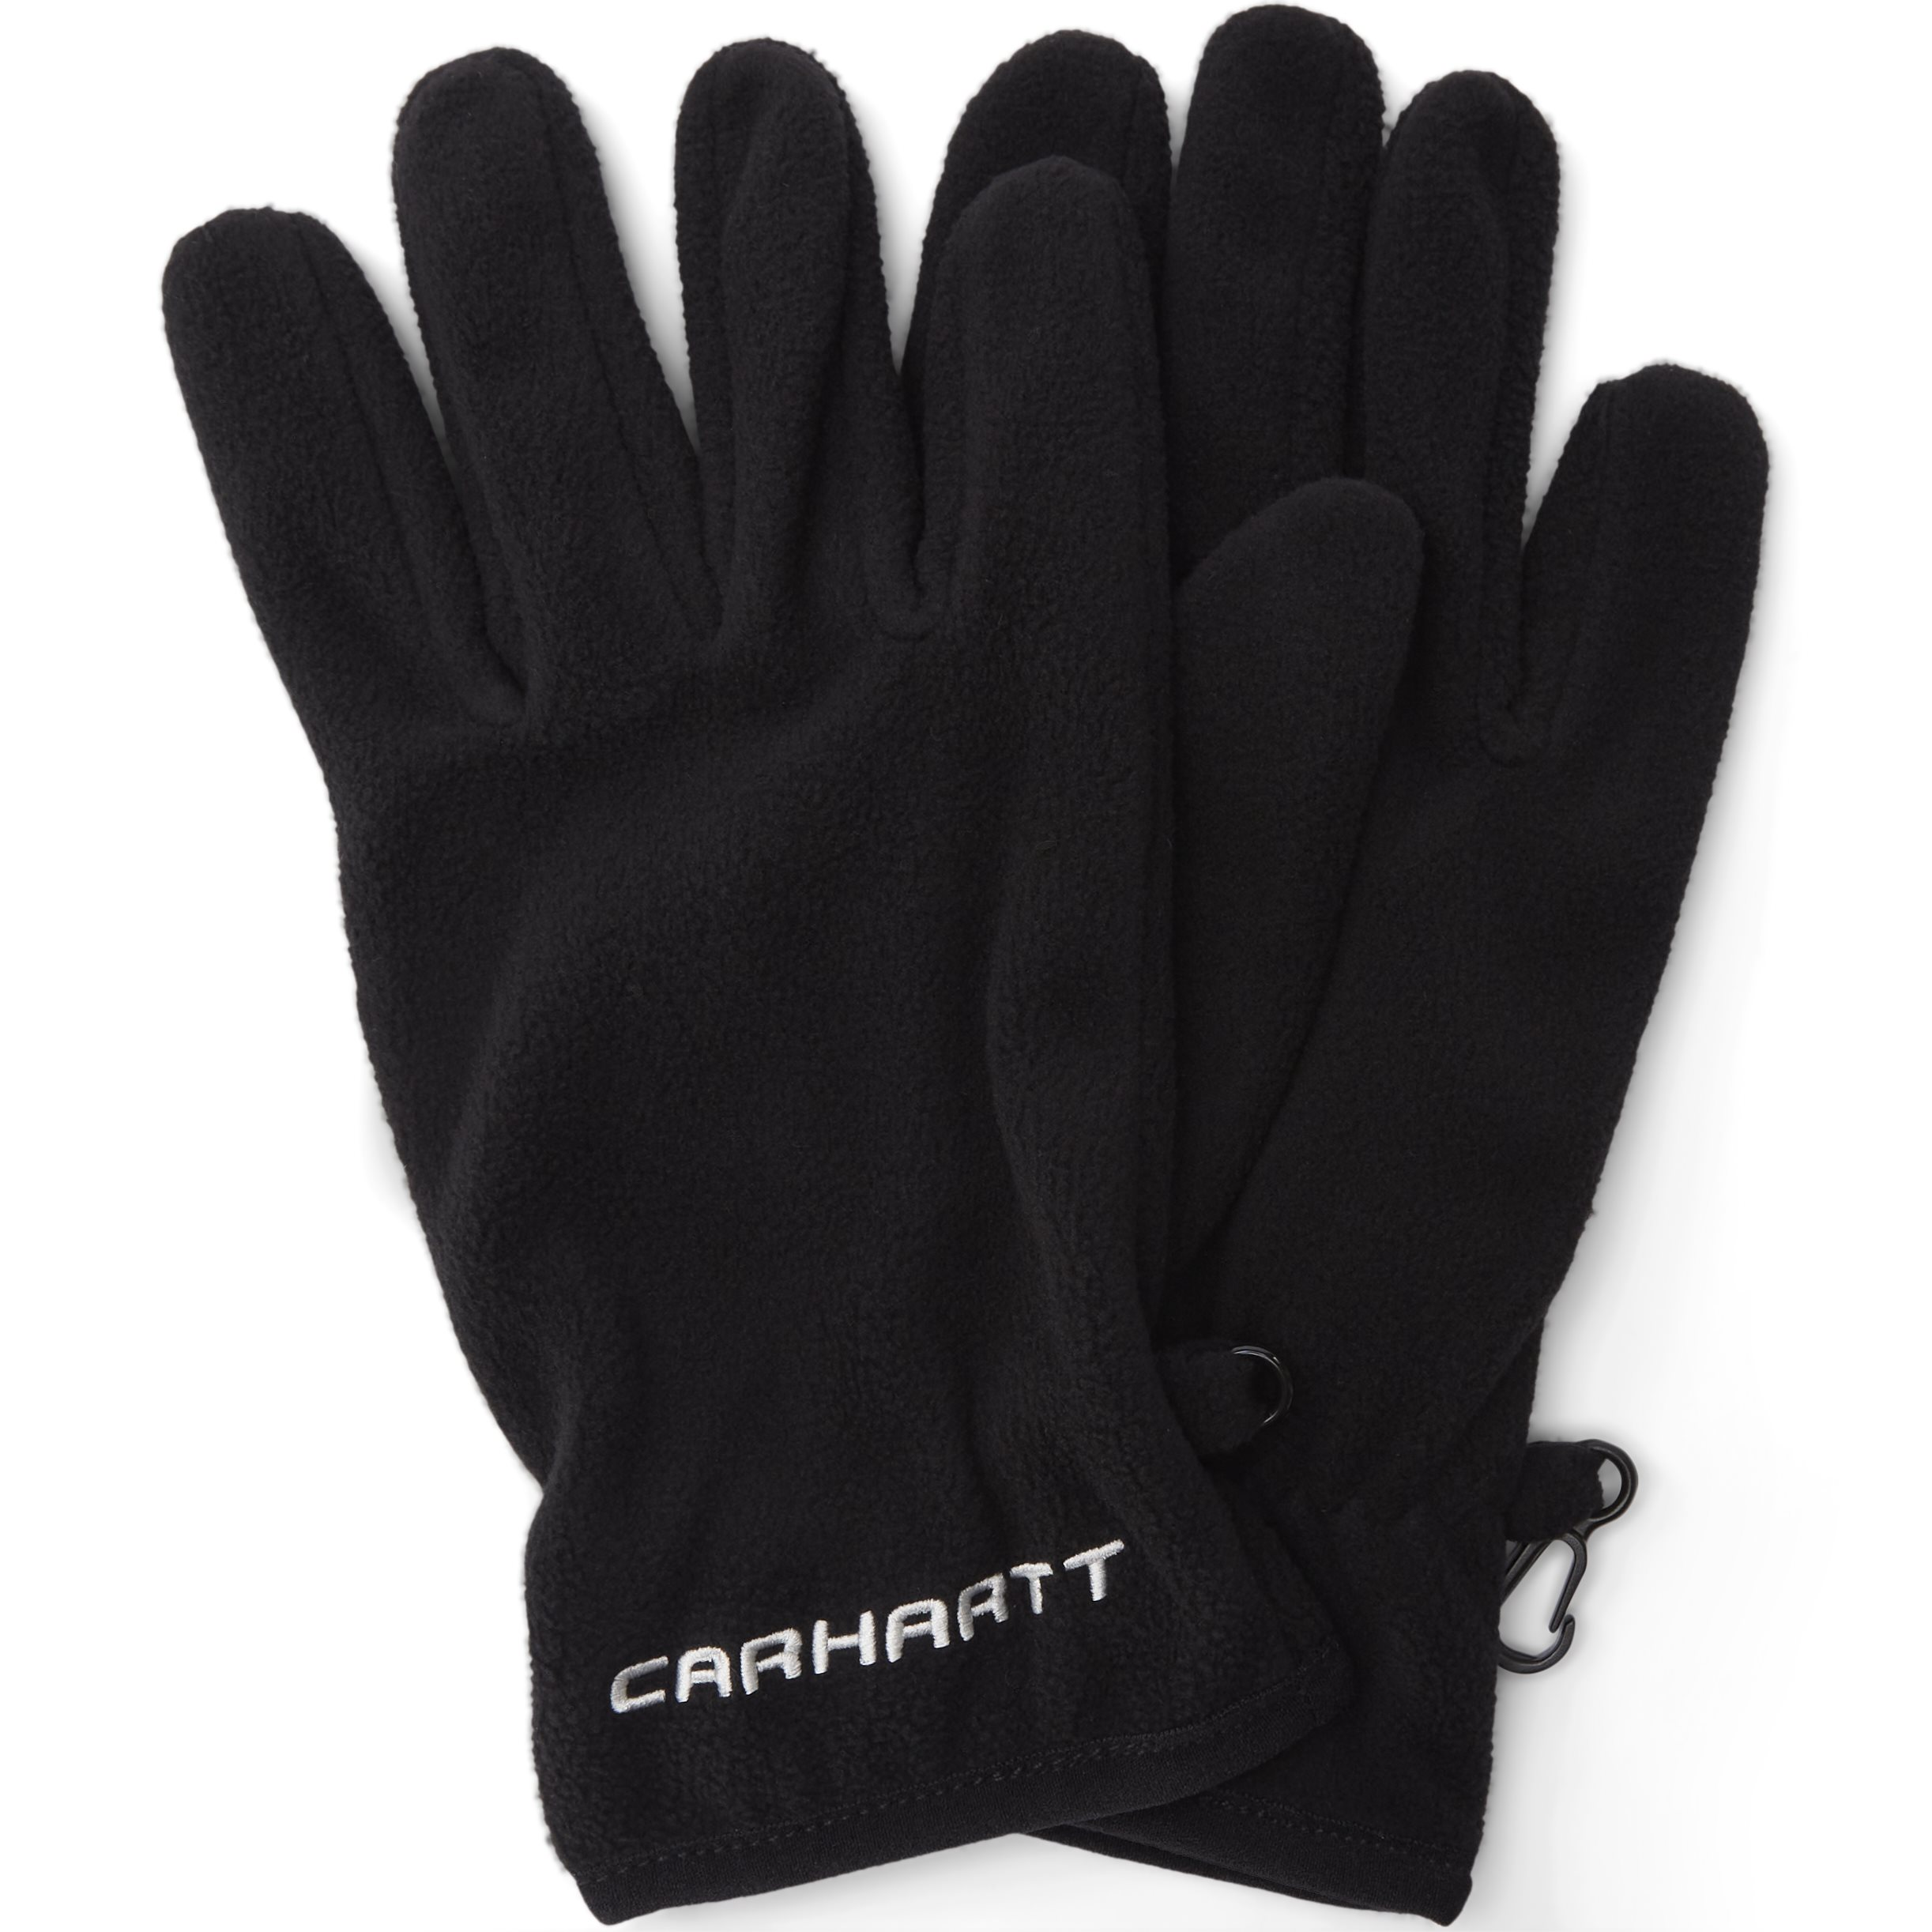 Beaumont Gloves - Handskar - Svart